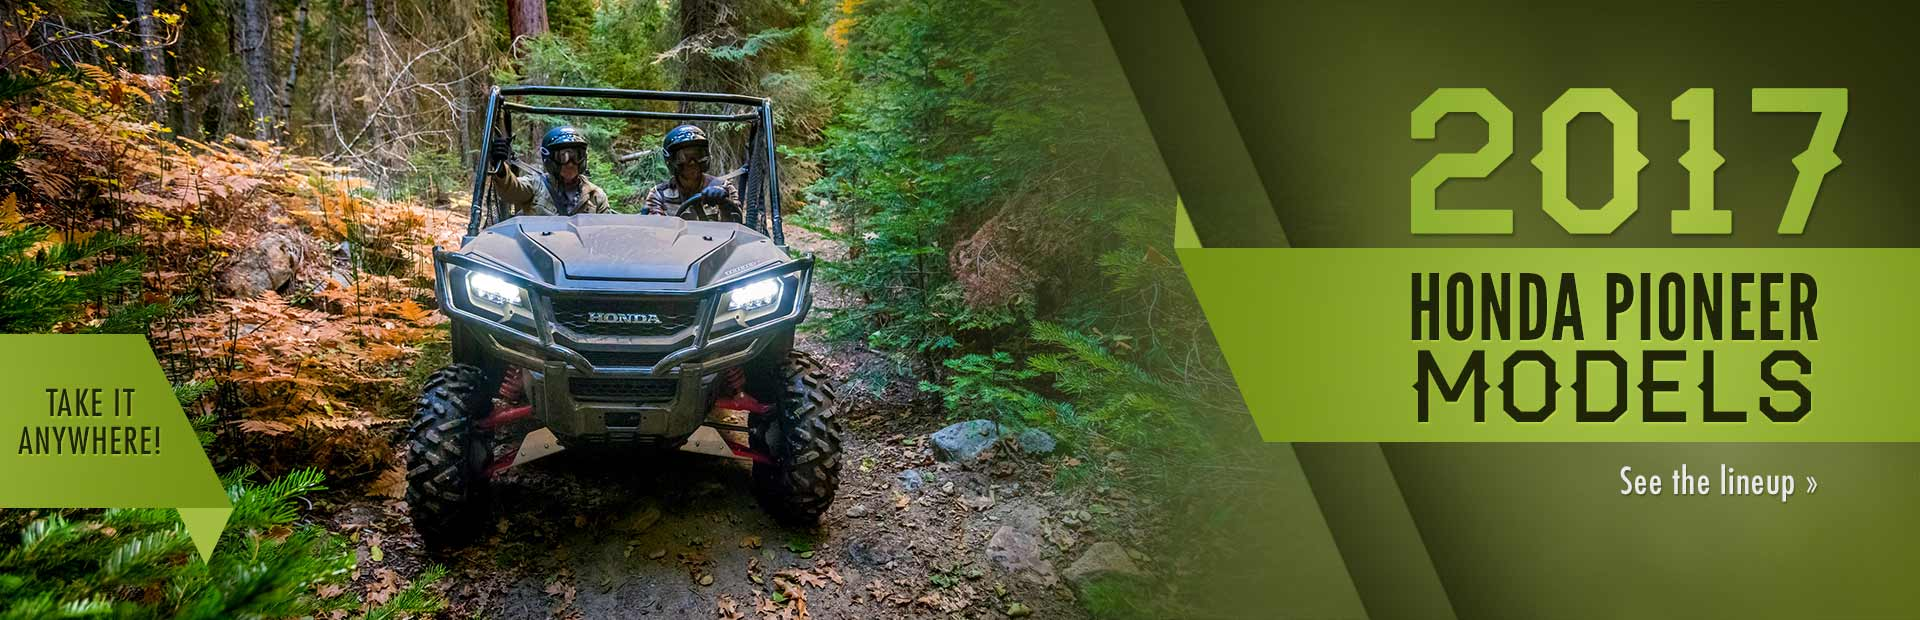 The 2017 Honda Pioneer Models: Click here to see the lineup.